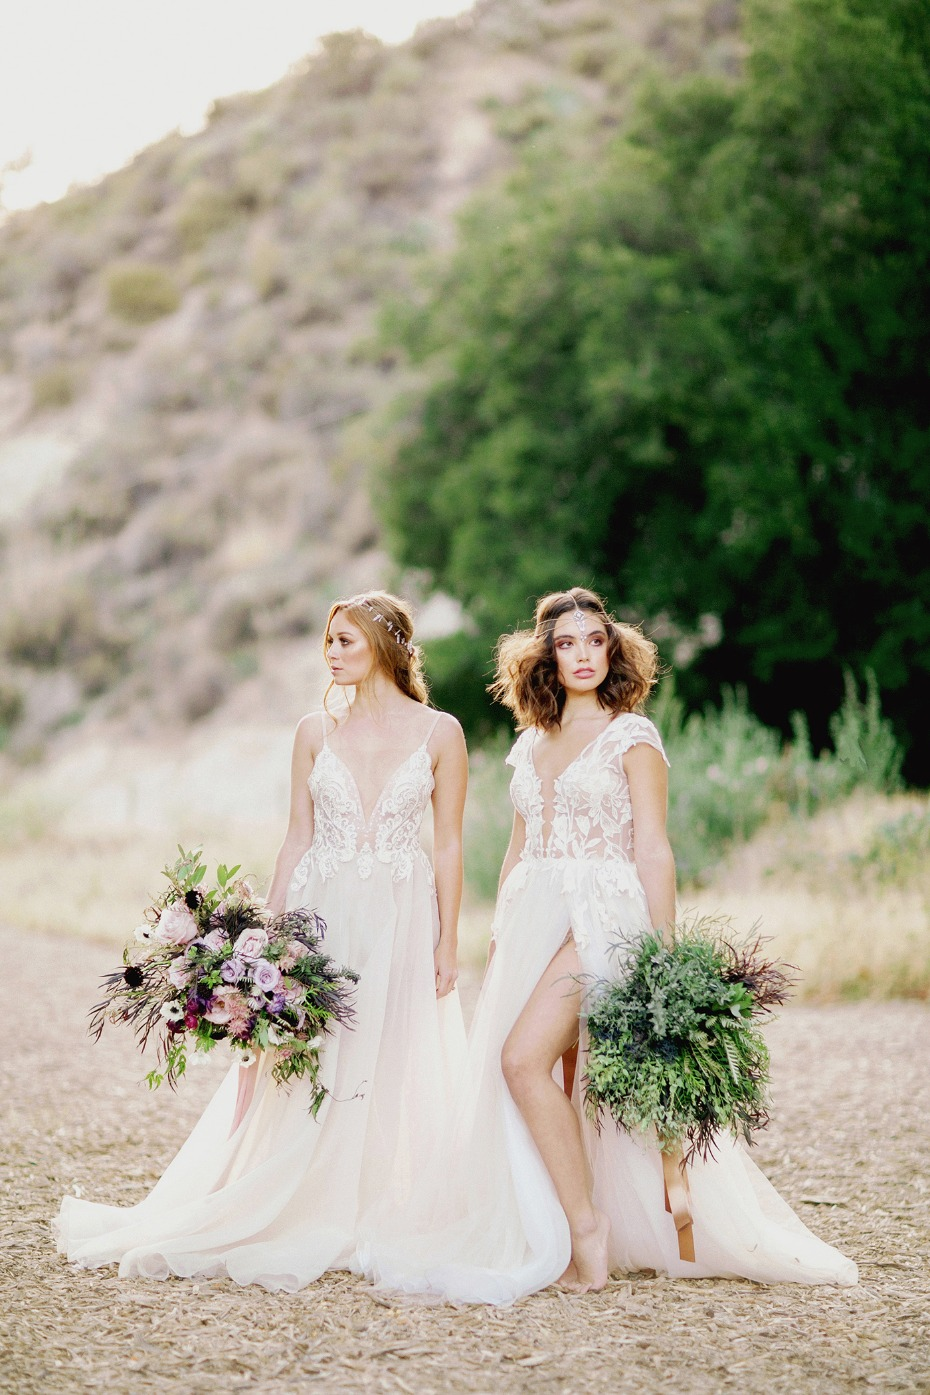 wedding dress options for your glam boho chic wedding